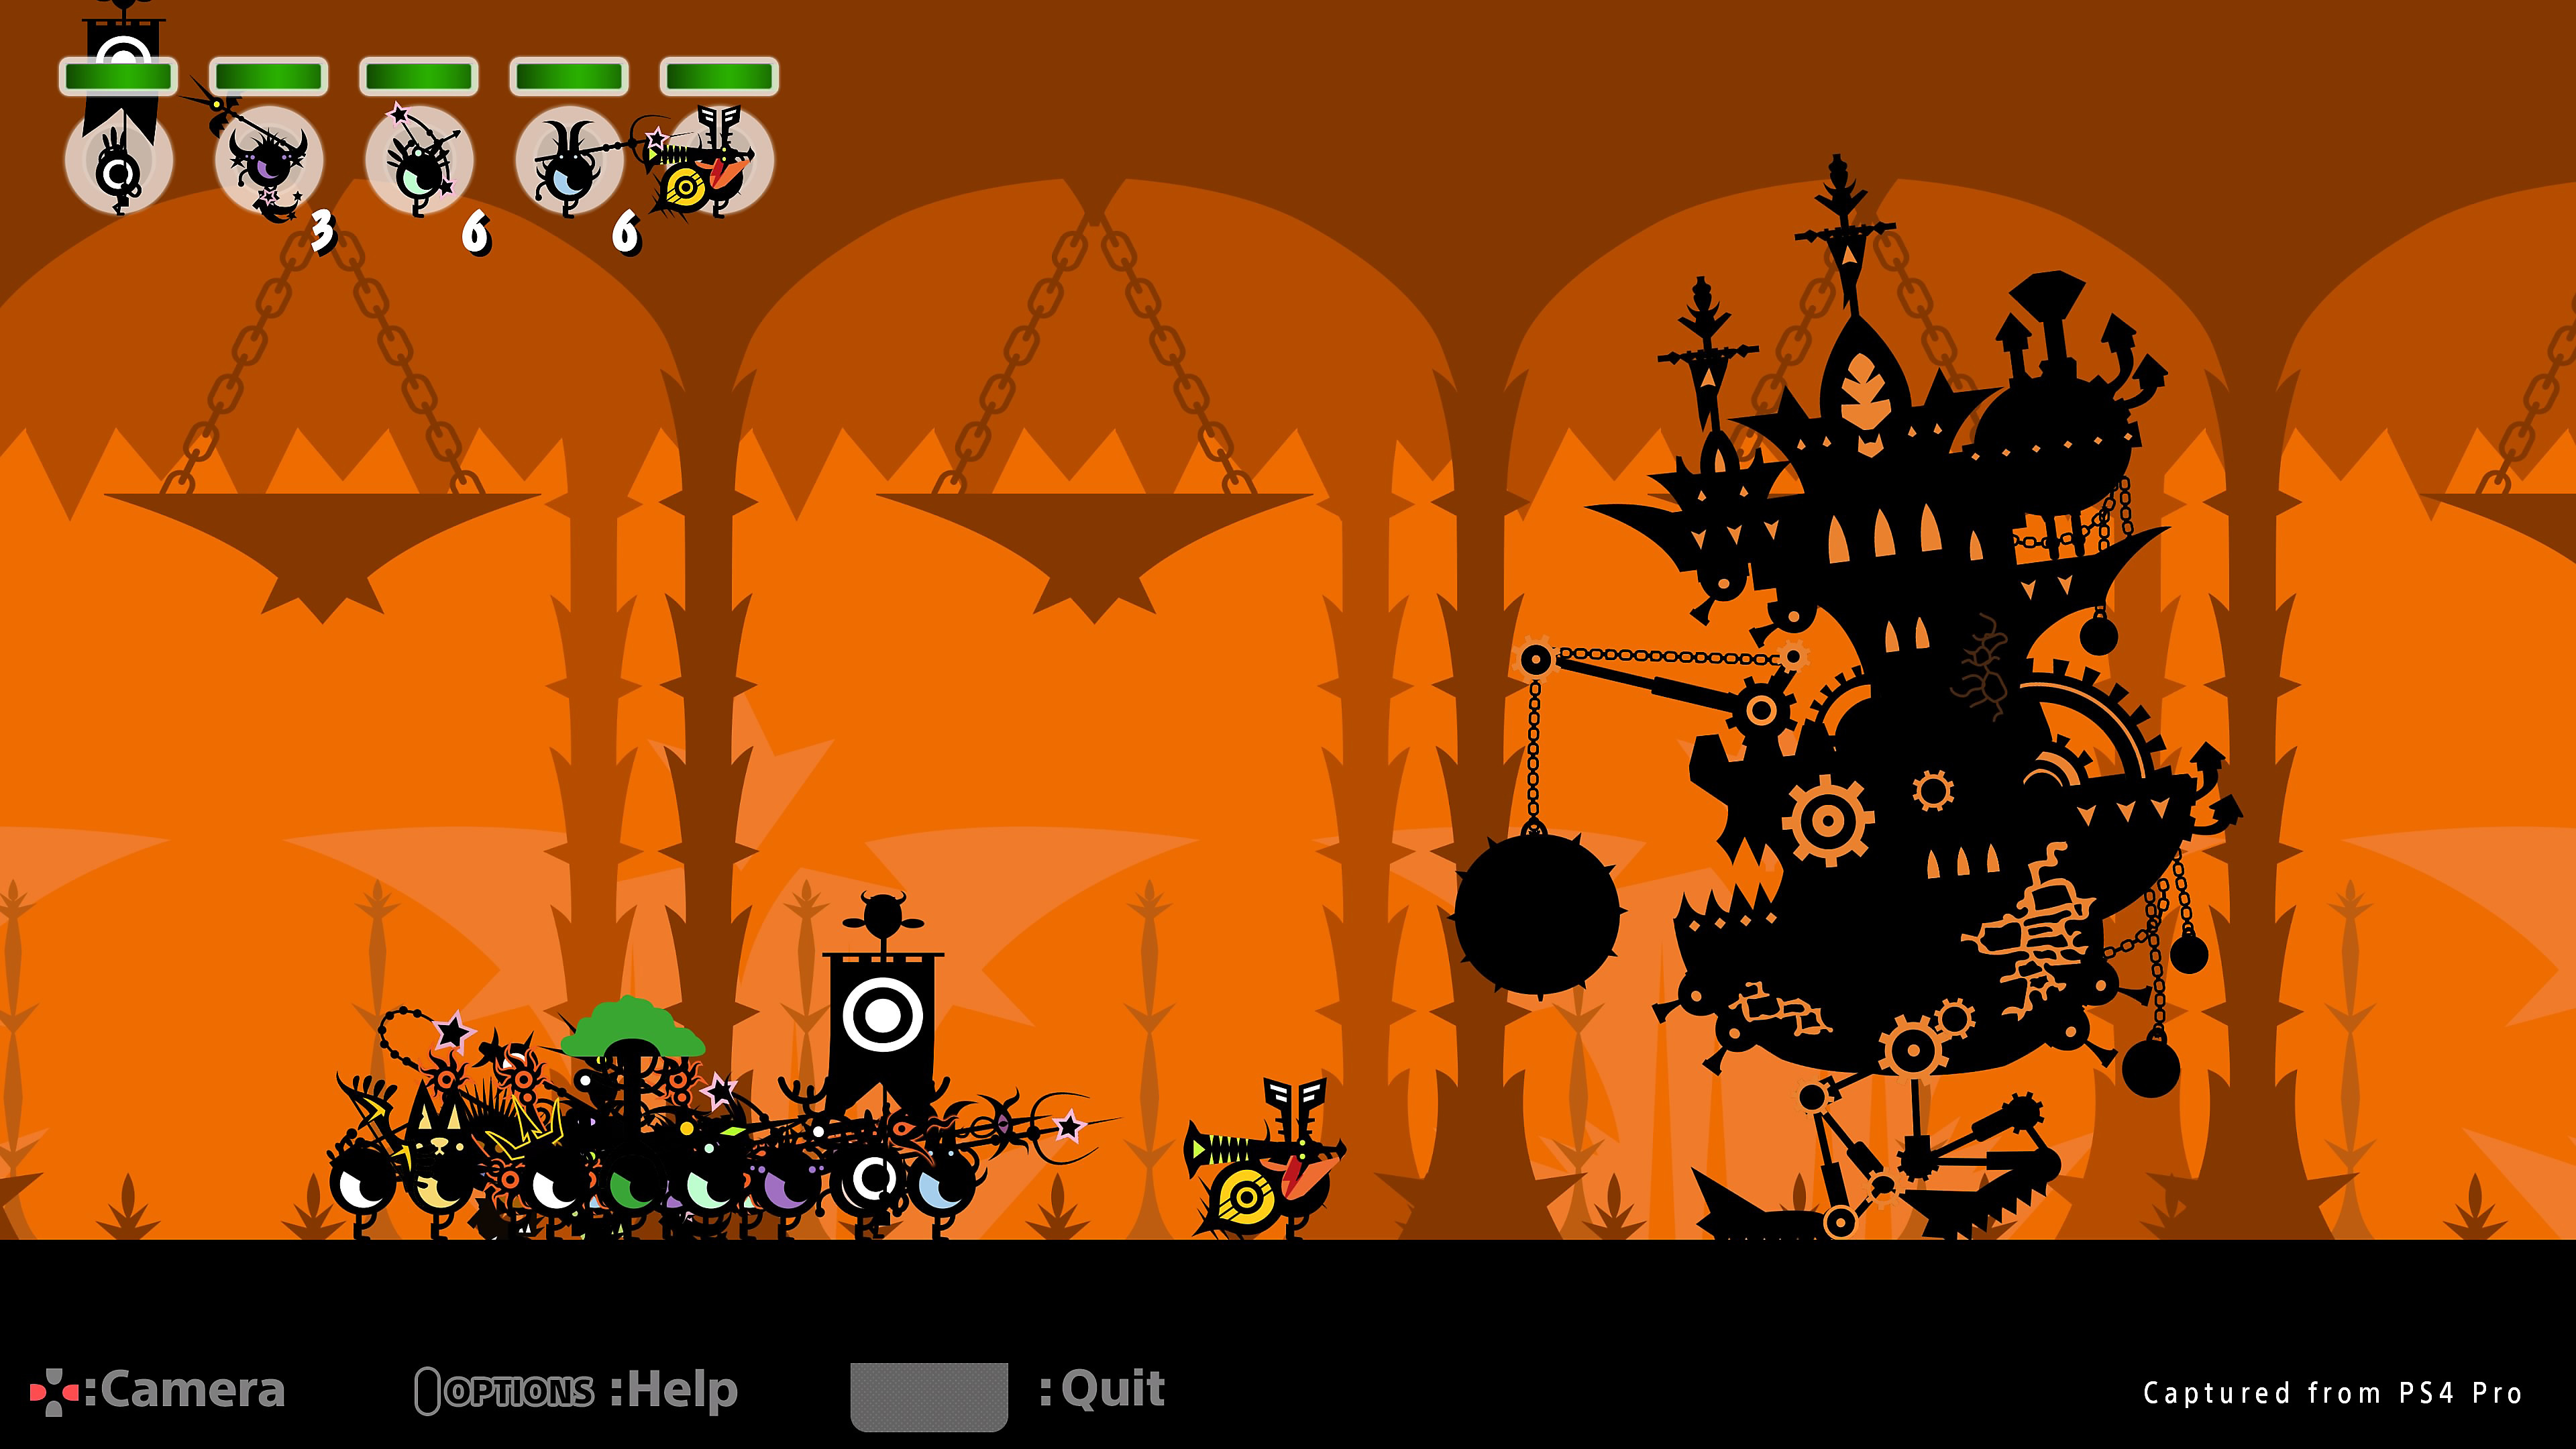 Patapon 2 Remastered - Key Features Screenshot 2